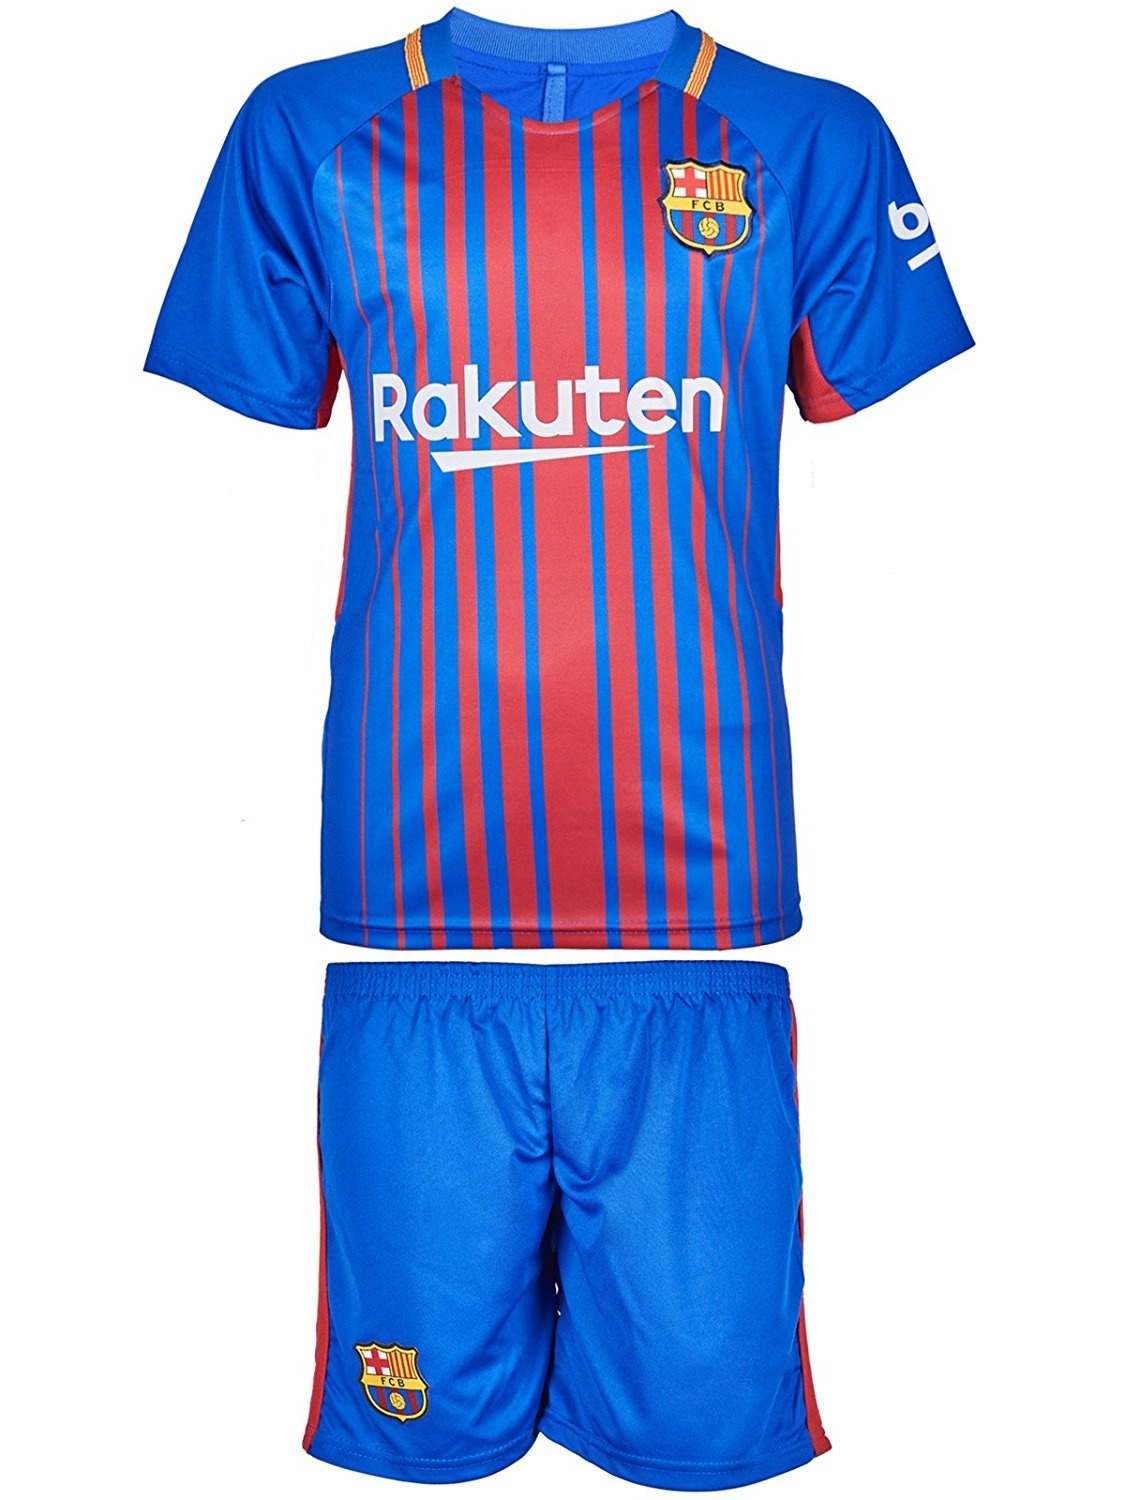 8082ca2cd3257 Messi Barcelona Jersey Sports & Outdoors: Buy Online from Fishpond.co.nz